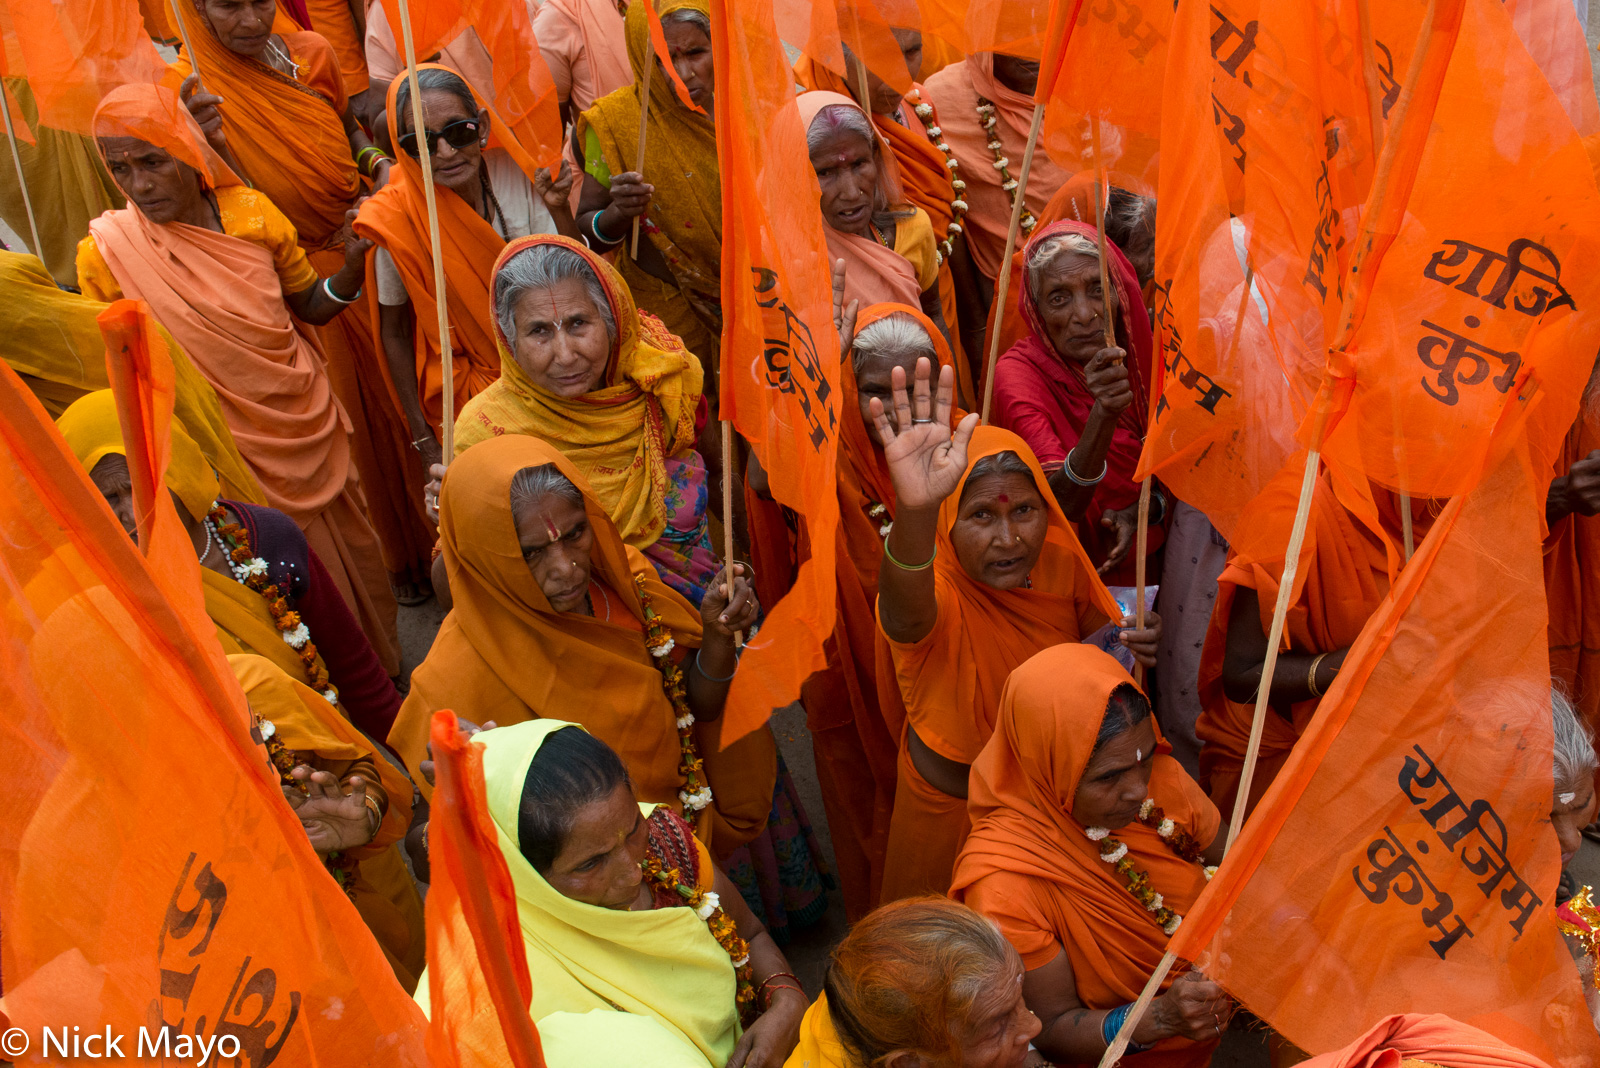 Chhattisgarh, Festival, India, Procession, Sadhvi, photo